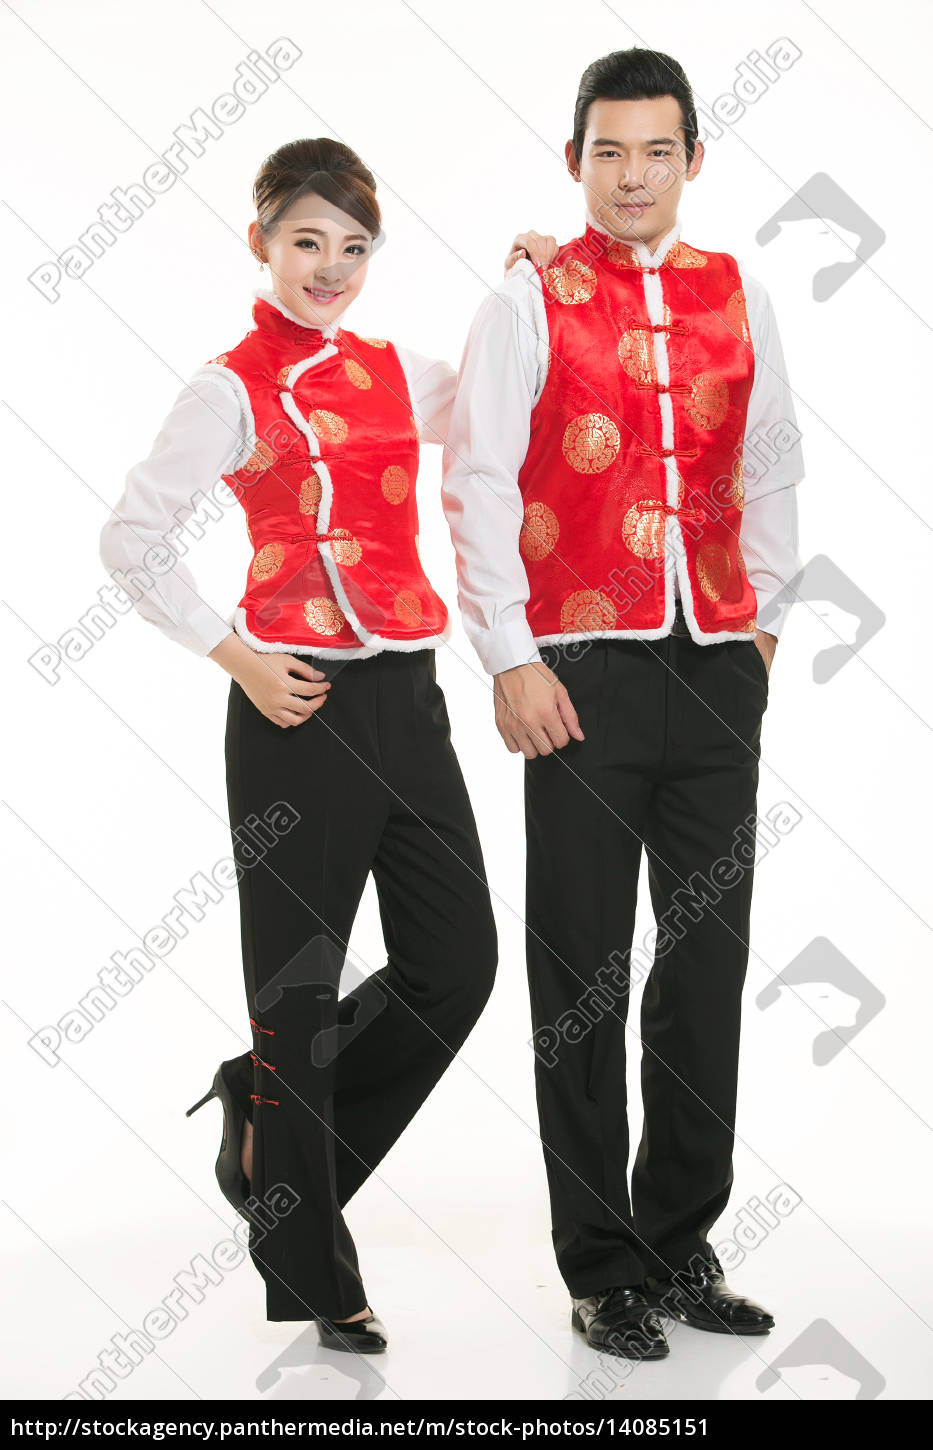 wearing, chinese, clothing, waiter, in, front - 14085151